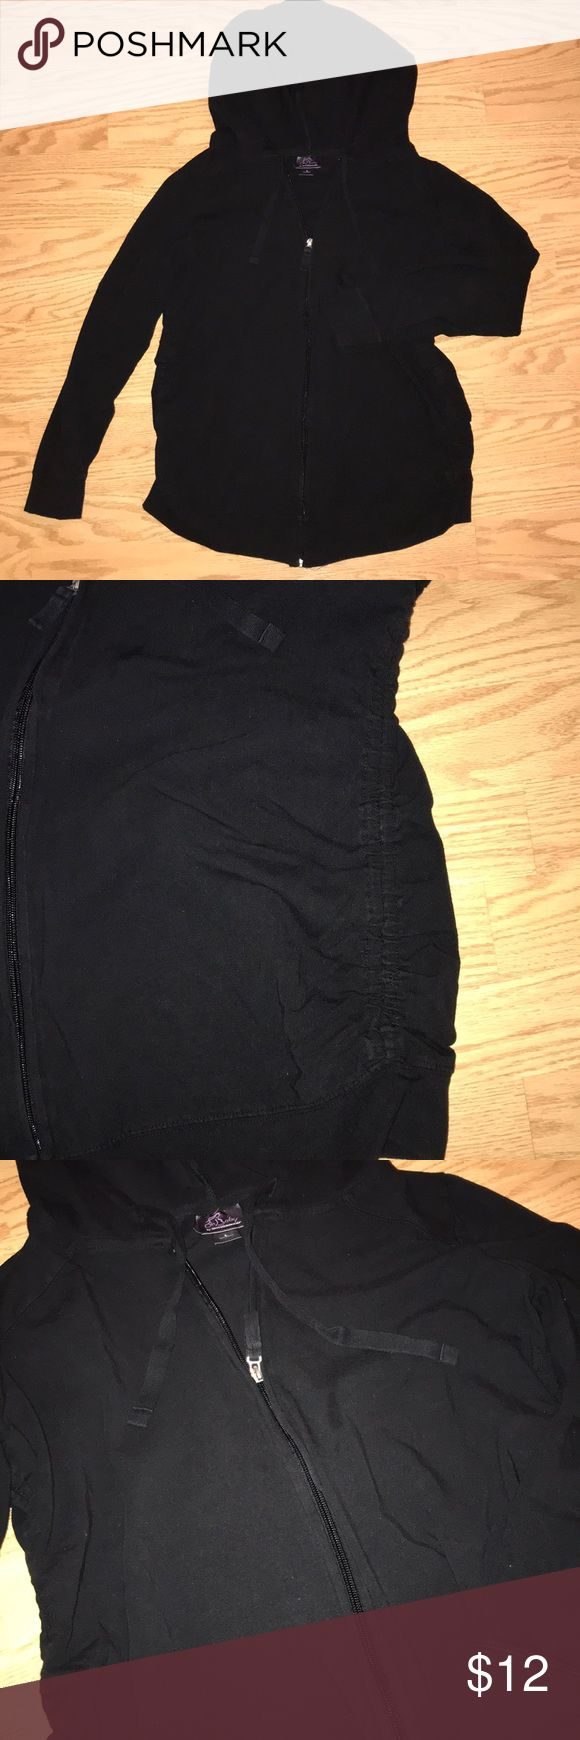 🤰🏻Maternity Zip Up Hoodie- L Black zip up maternity hoodie. Has ruched sides for a stretchy fit. Good condition. Smoke-free, Pet-free home.   Bundle and Save!!! Oh Baby by Motherhood Tops Sweatshirts & Hoodies